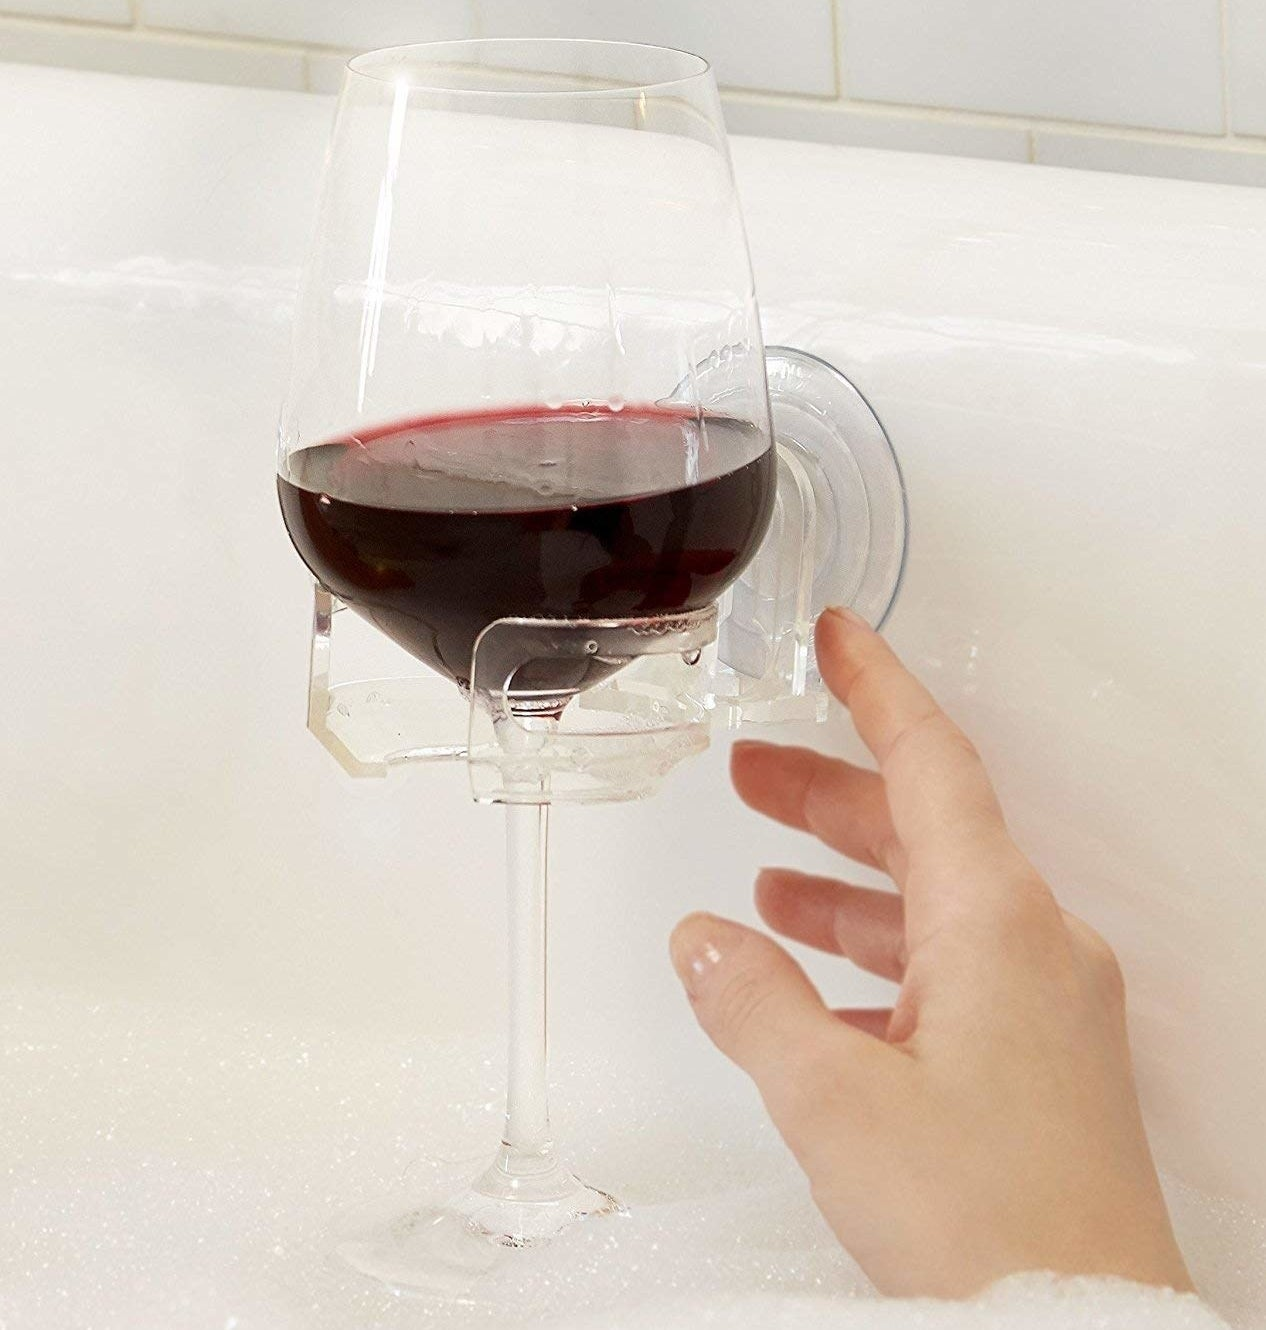 person using the glass holder in the bath